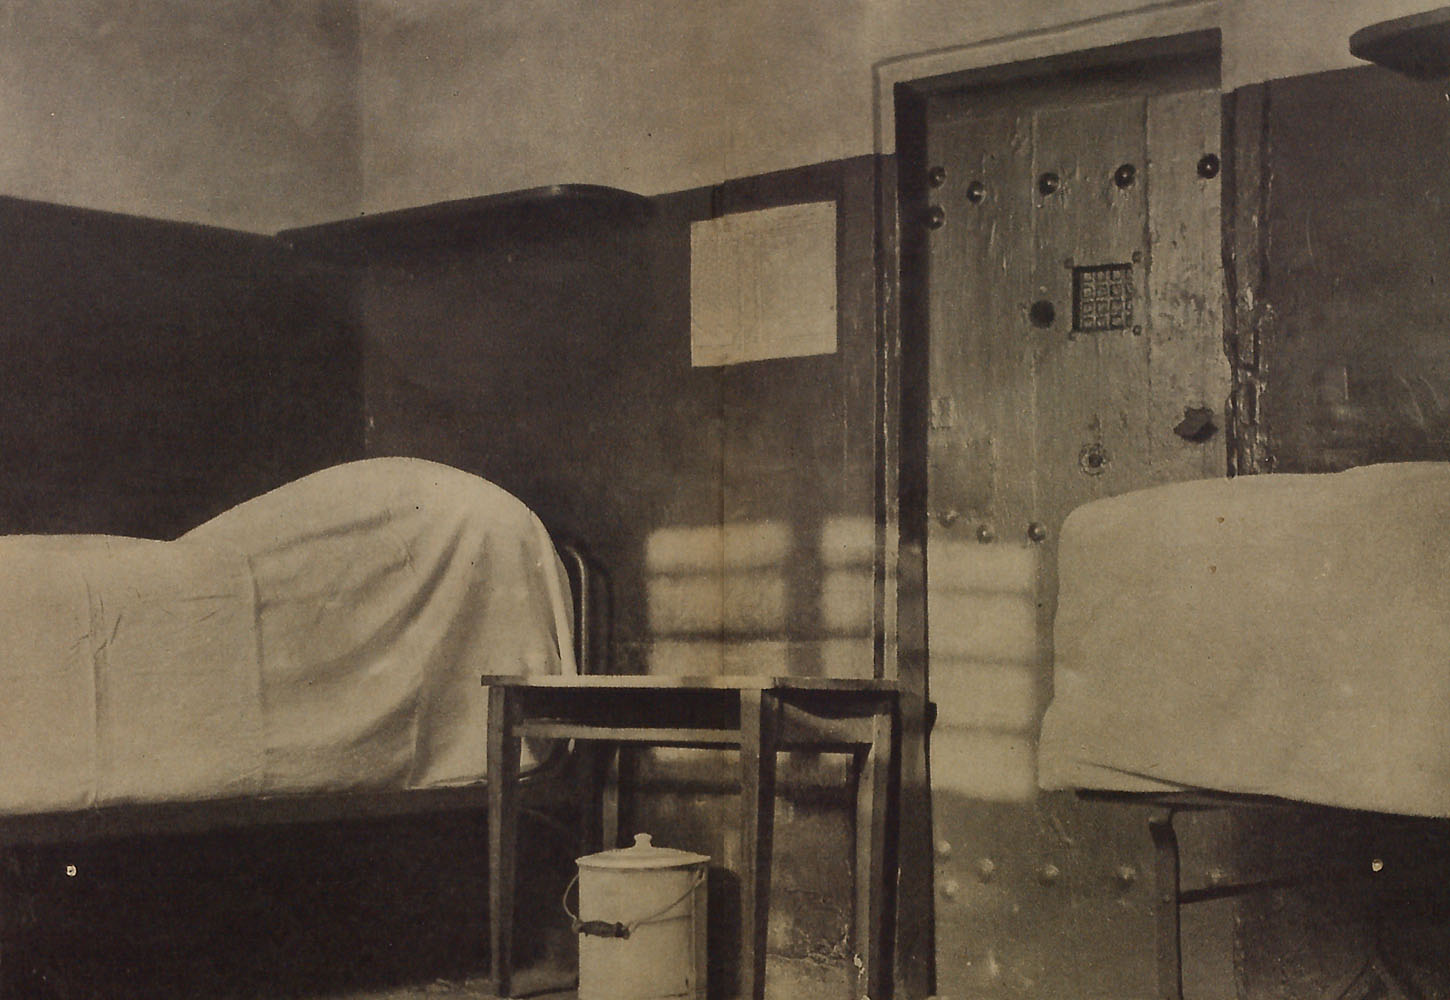 Interior view, prison cell